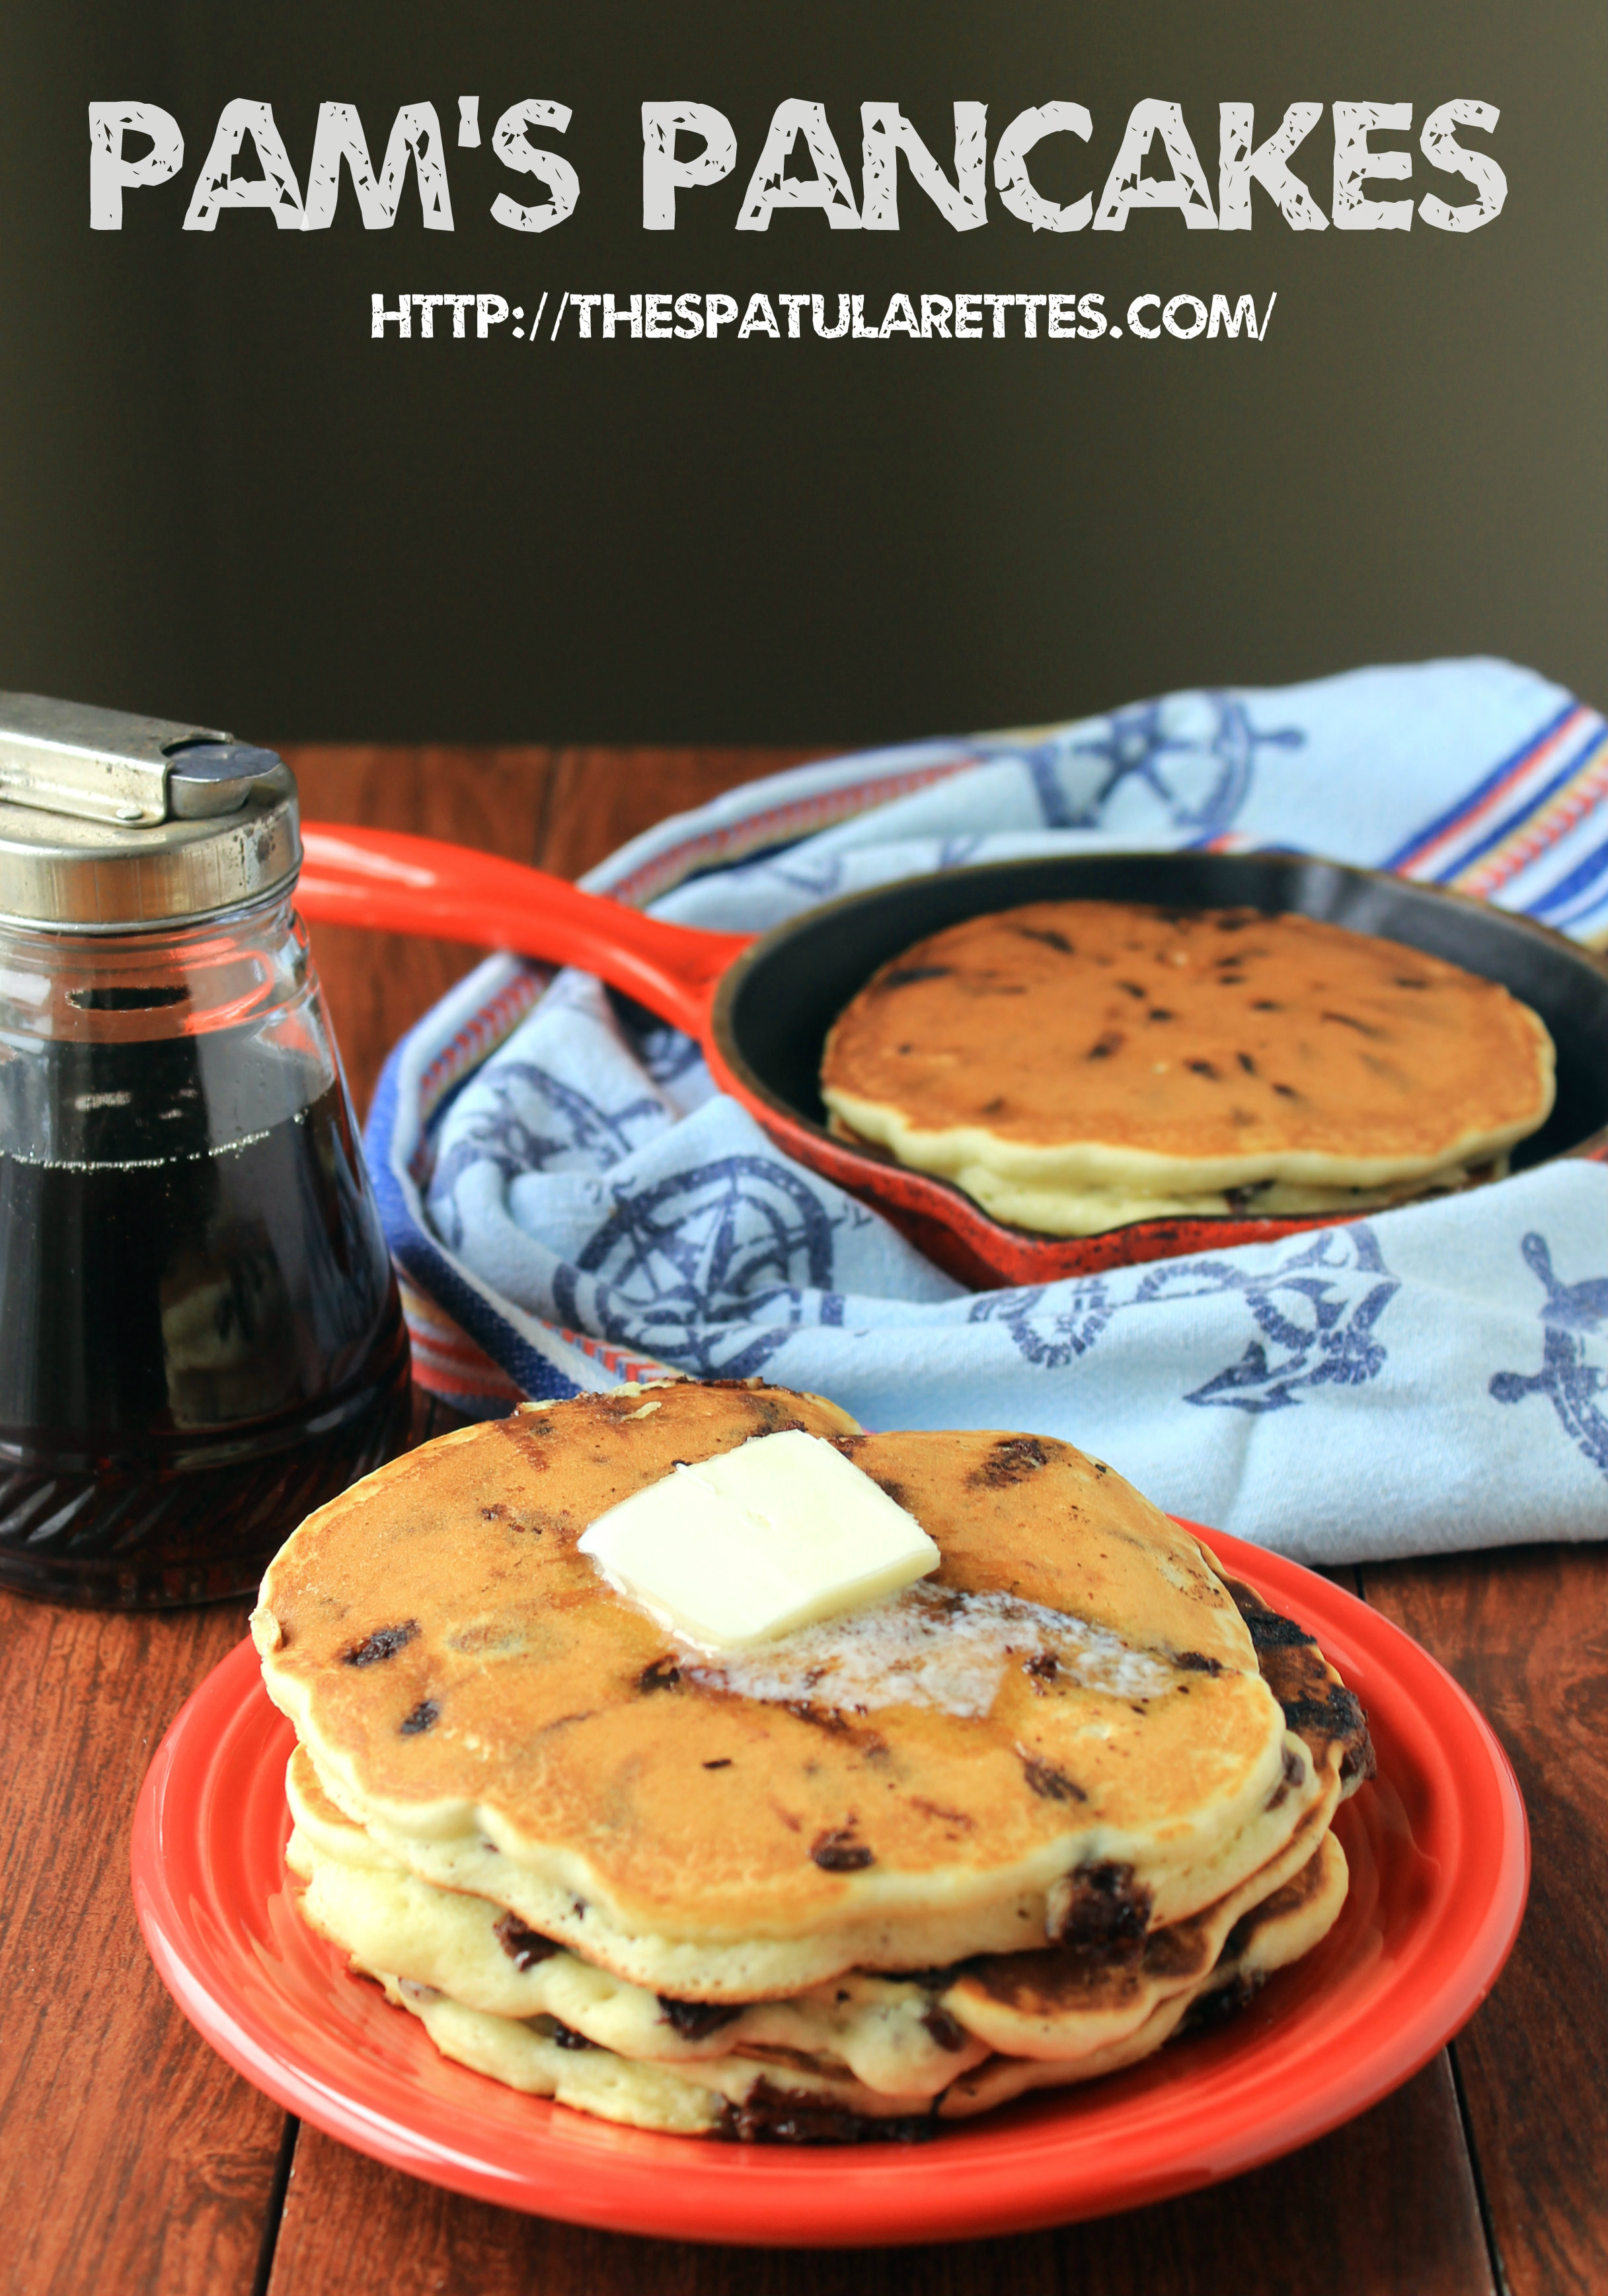 Discussion on this topic: Chocolate Chip Workout Pancakes, chocolate-chip-workout-pancakes/